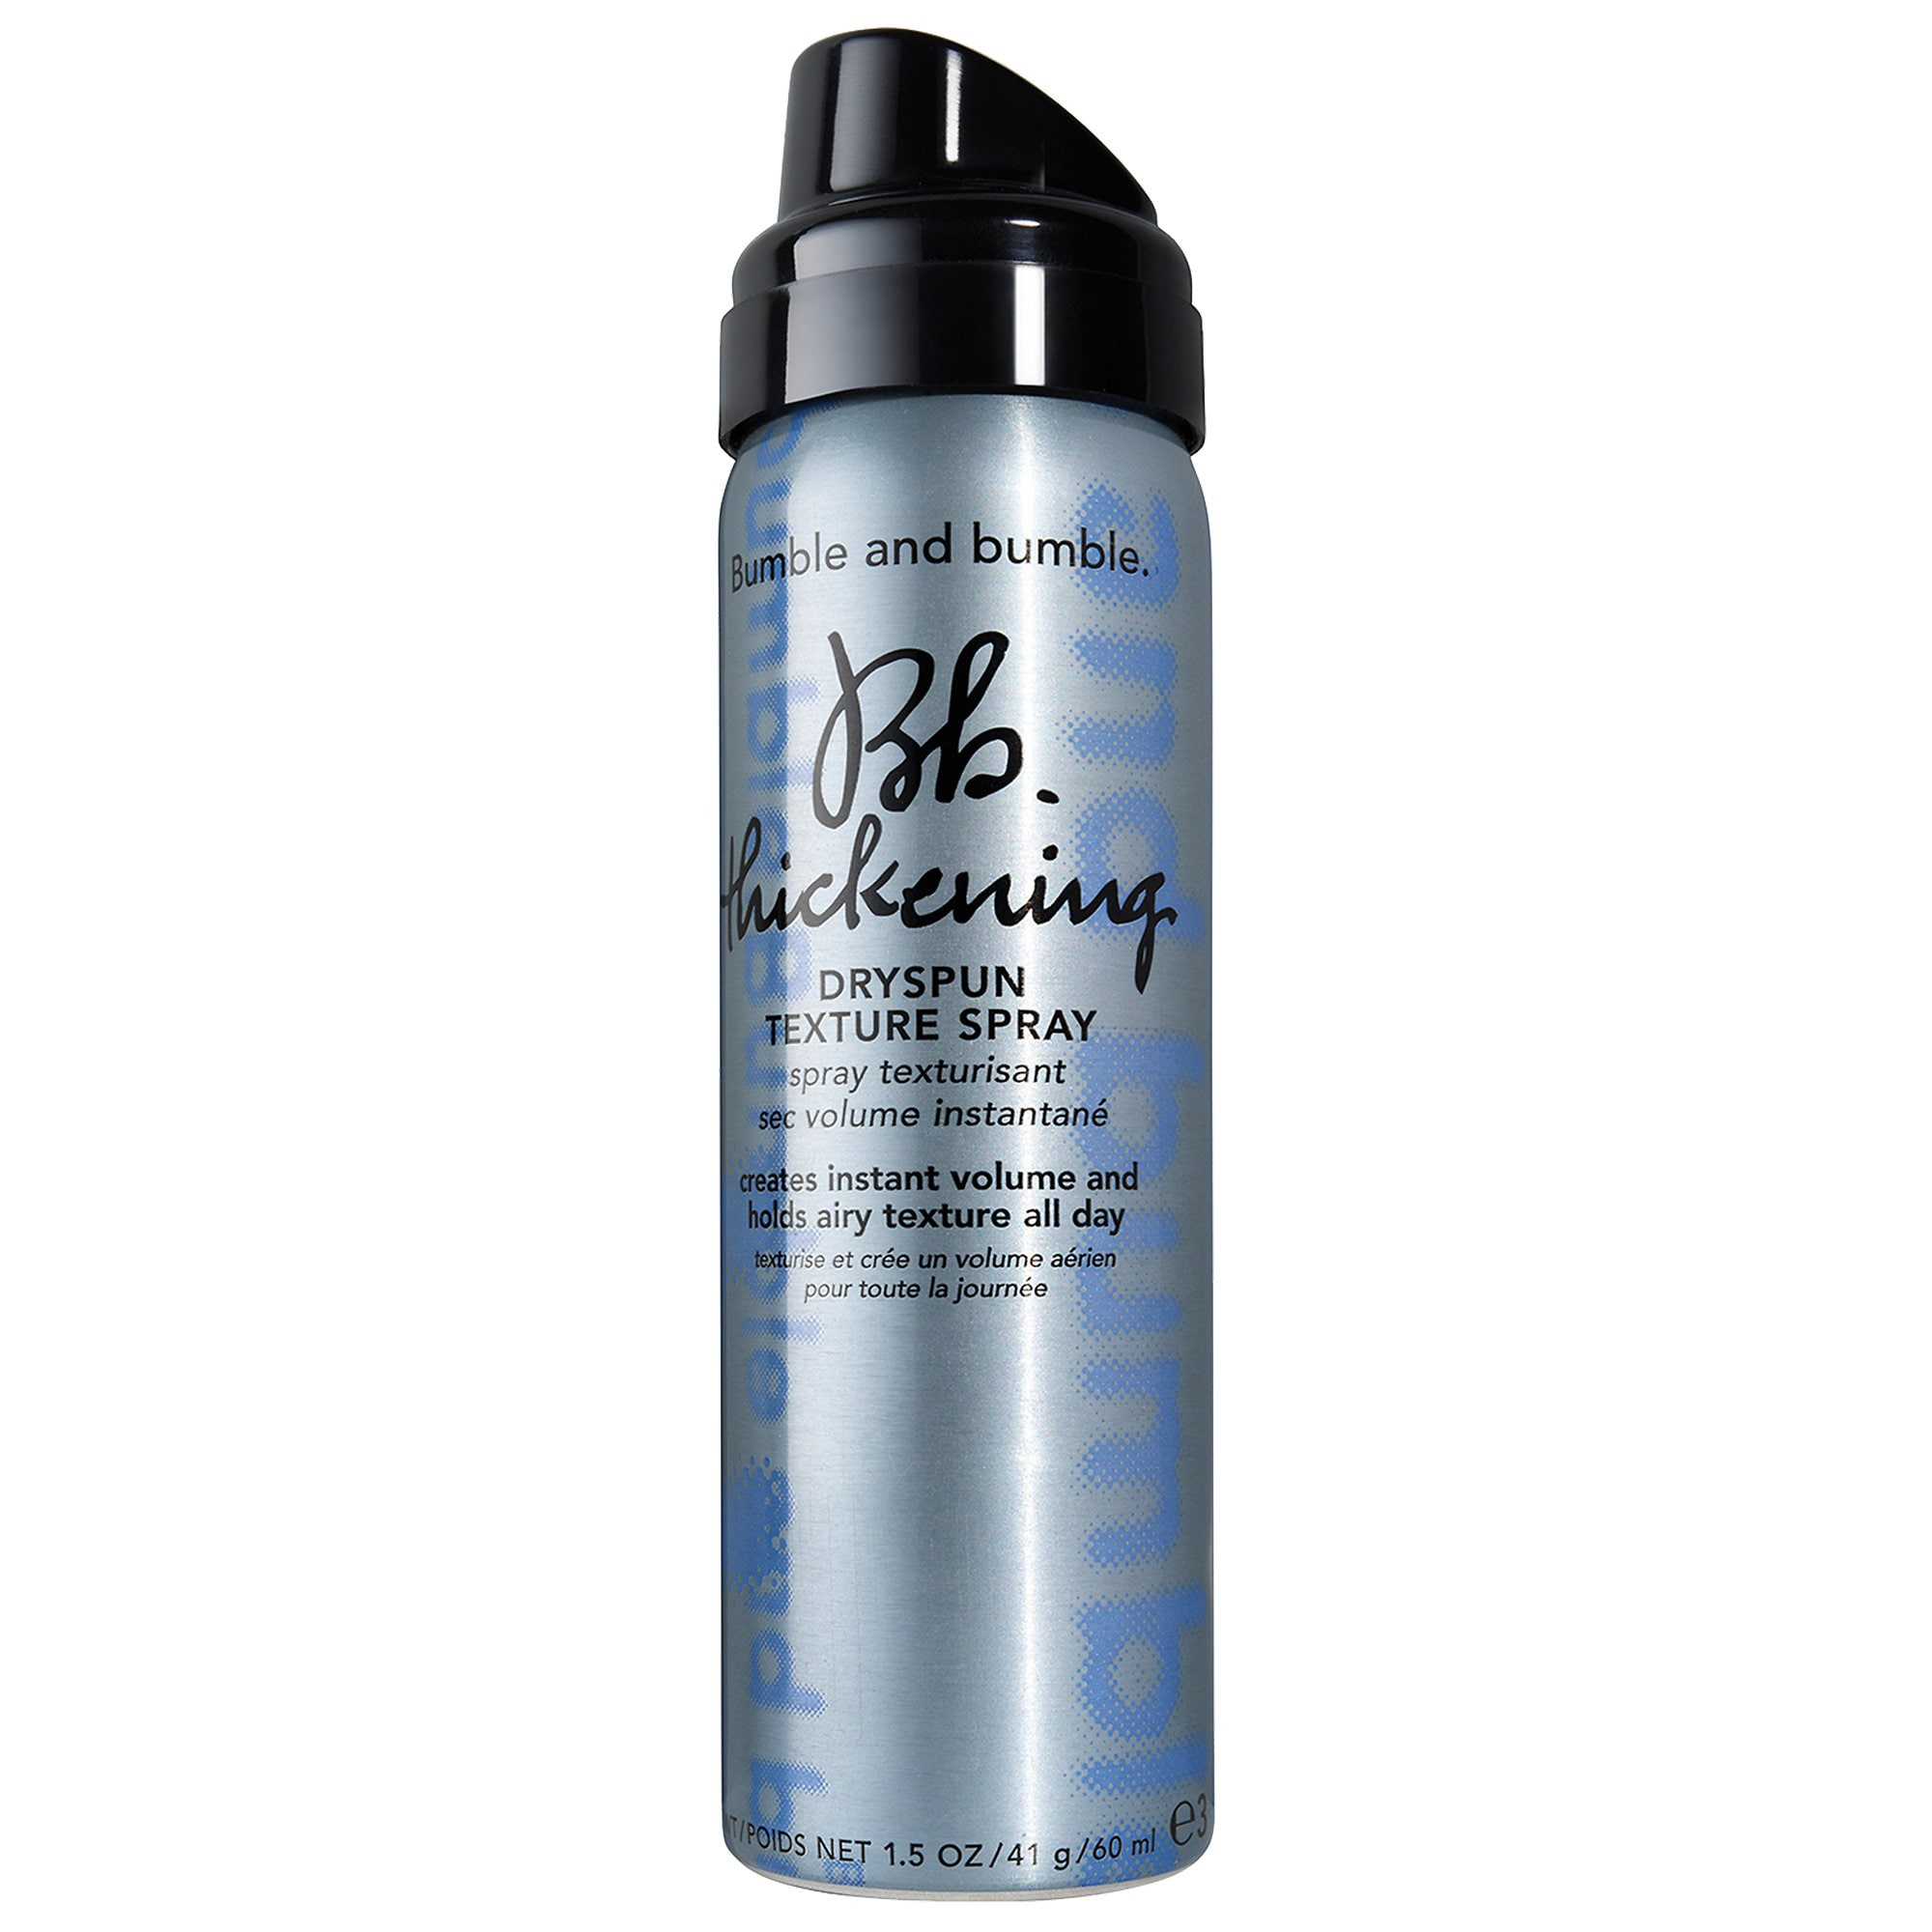 Bumble and bumble - Thickening Dryspun Volume Texture Spray Mini